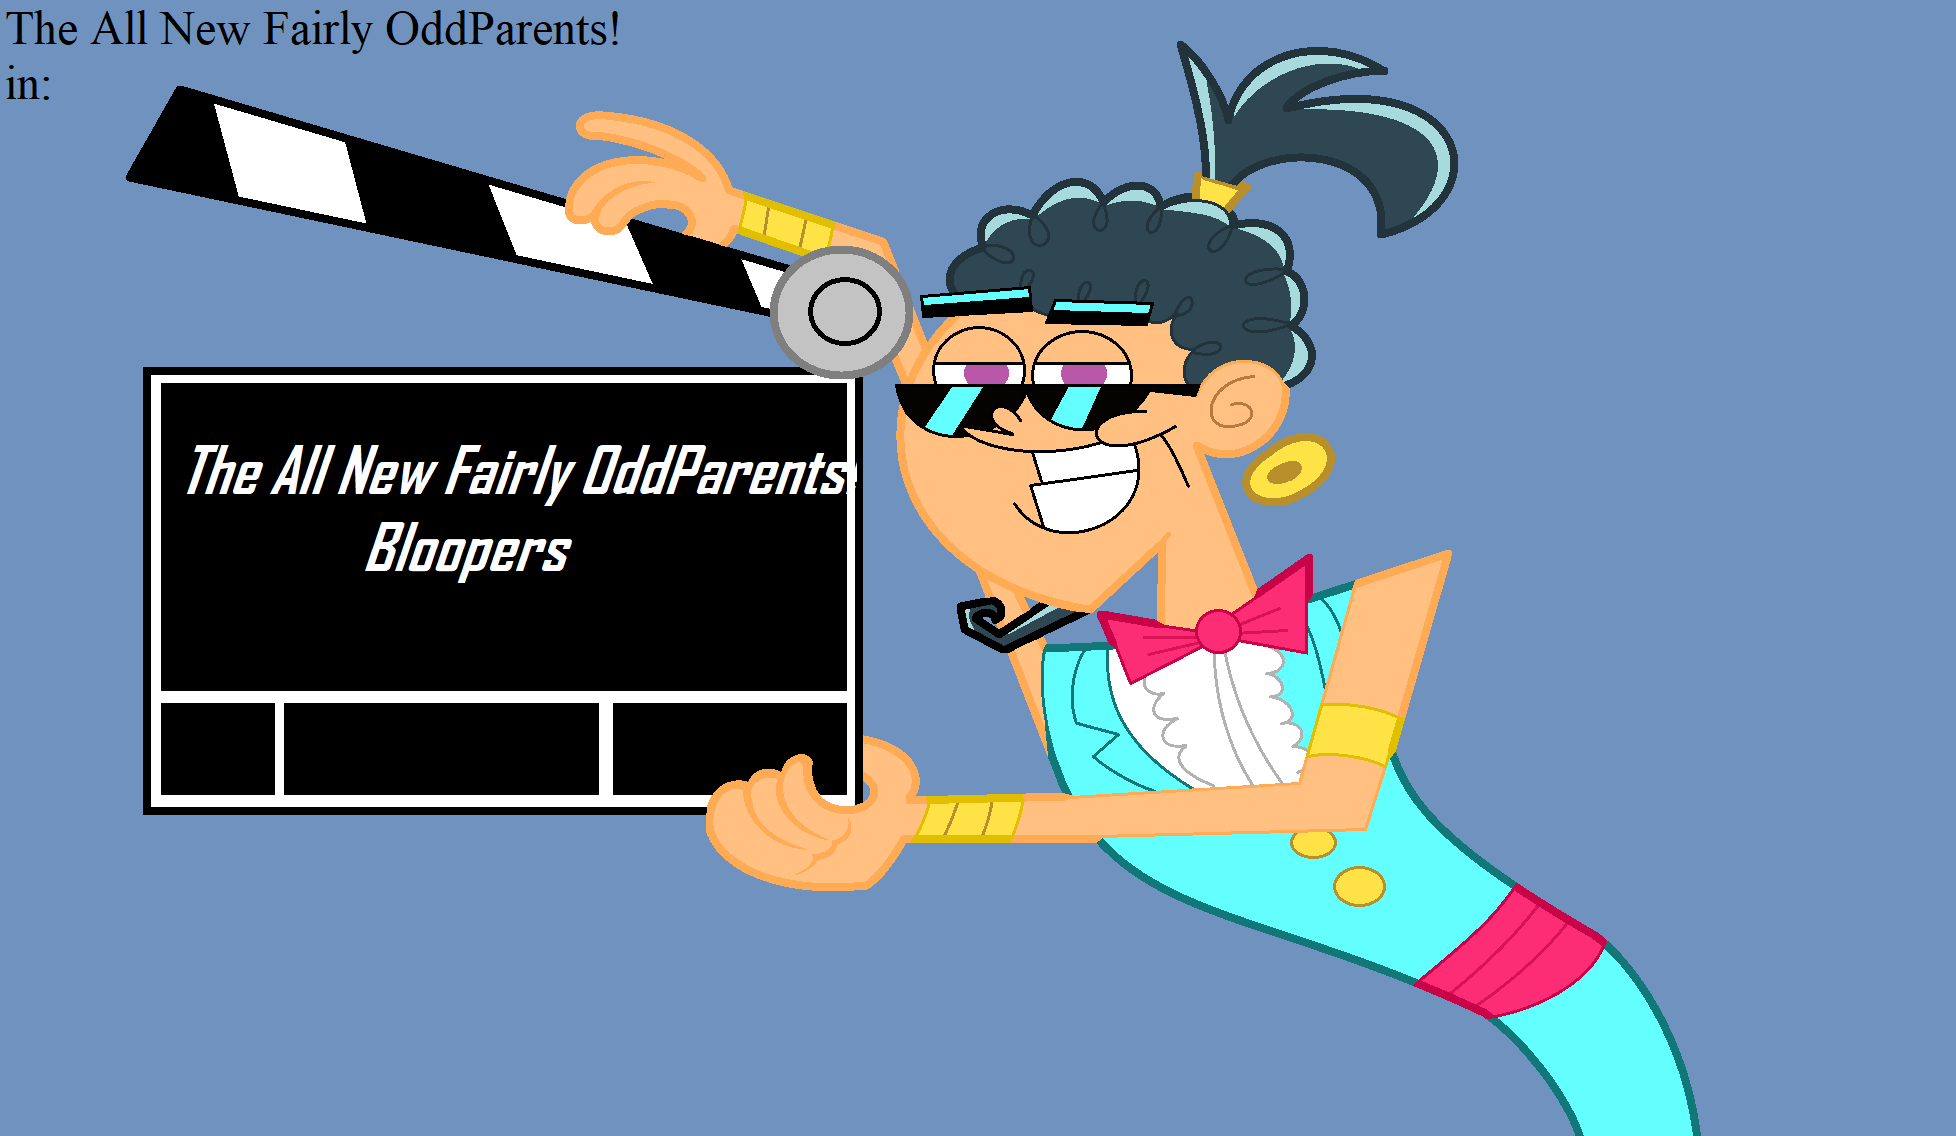 The All New Fairly OddParents! Bloopers